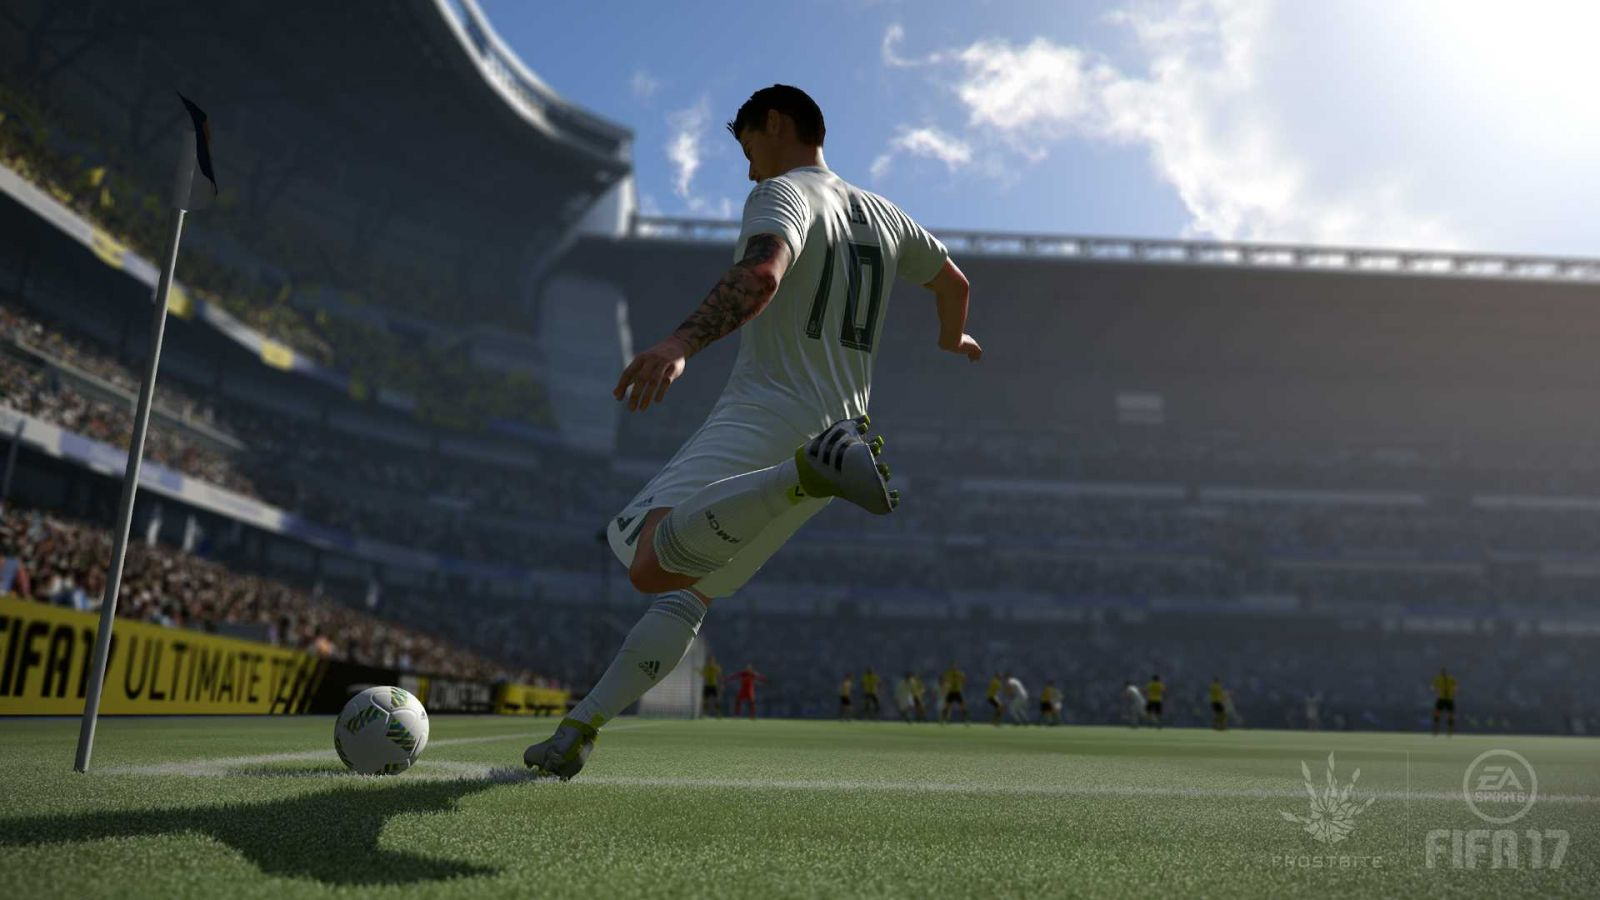 FIFA 17 Preview: Massive Changes Made to the Series